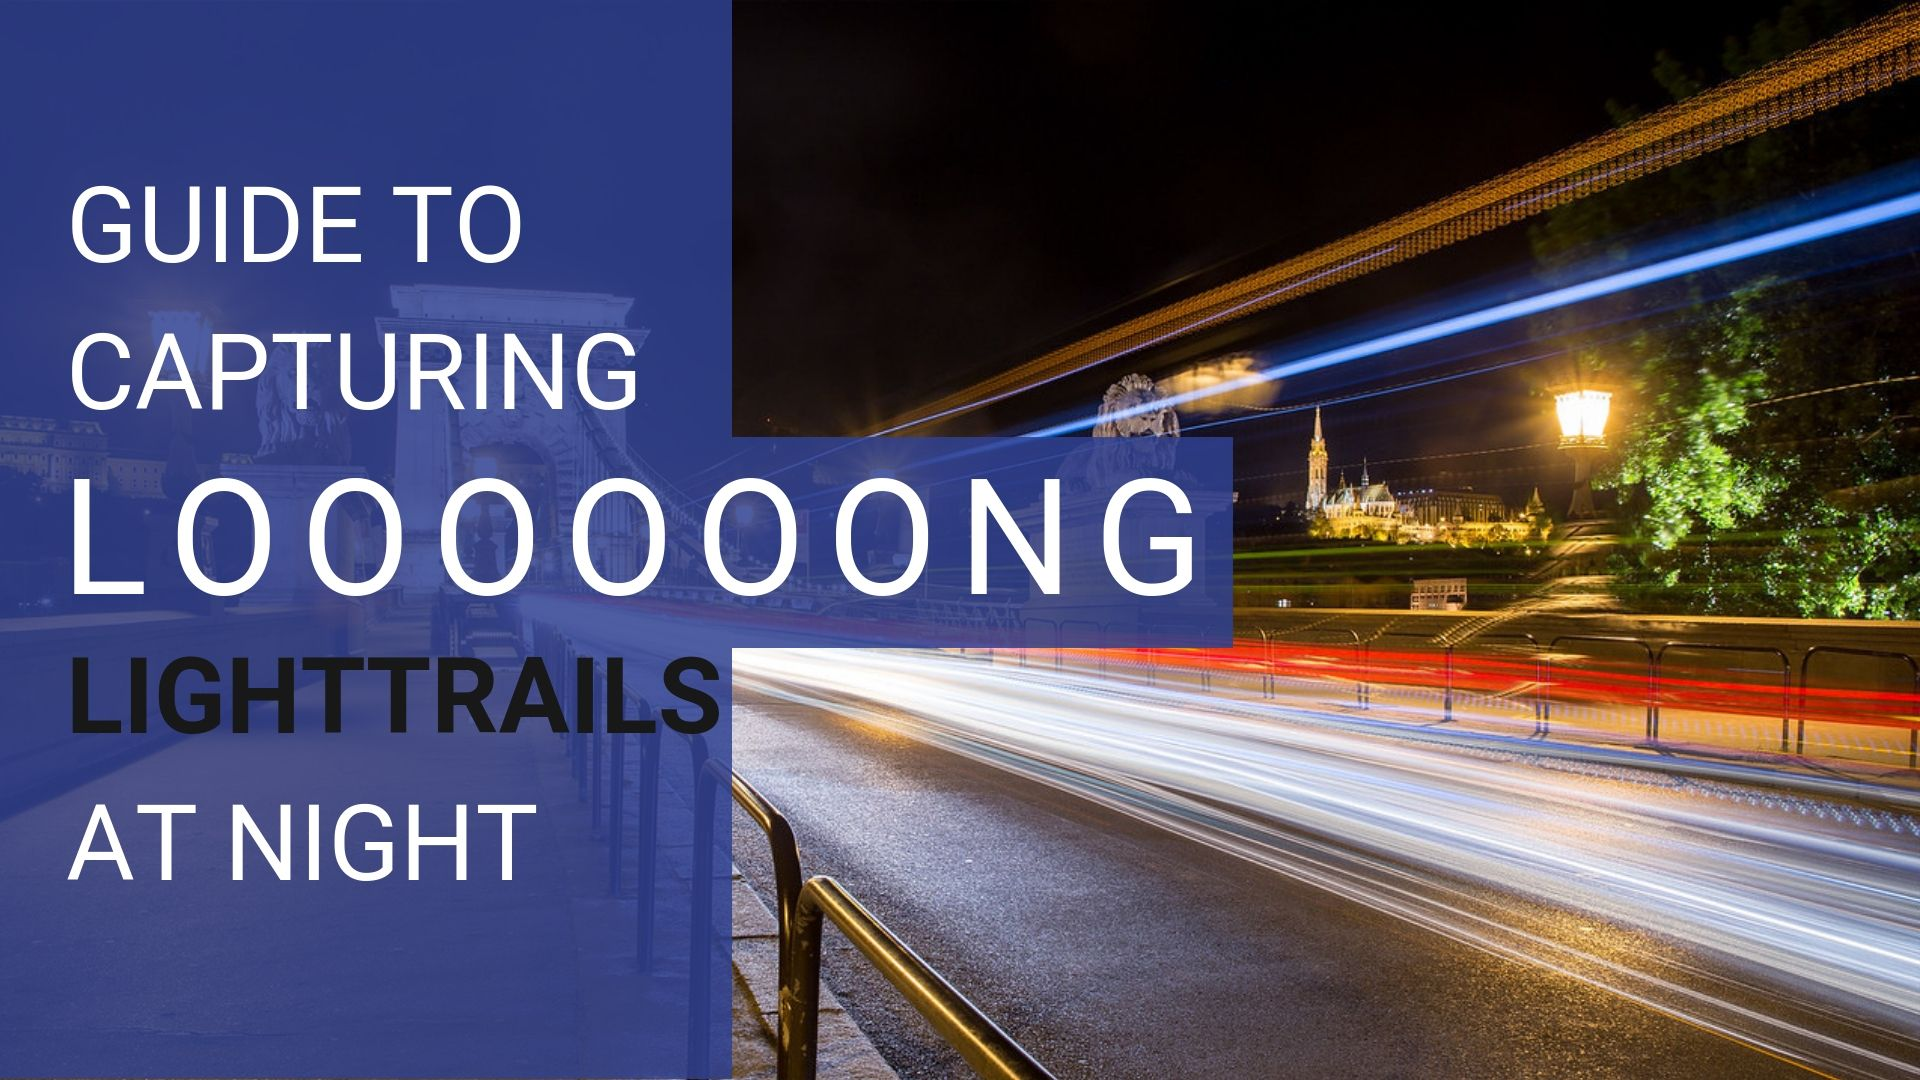 Guide to capturing long lightrails at night with stacking